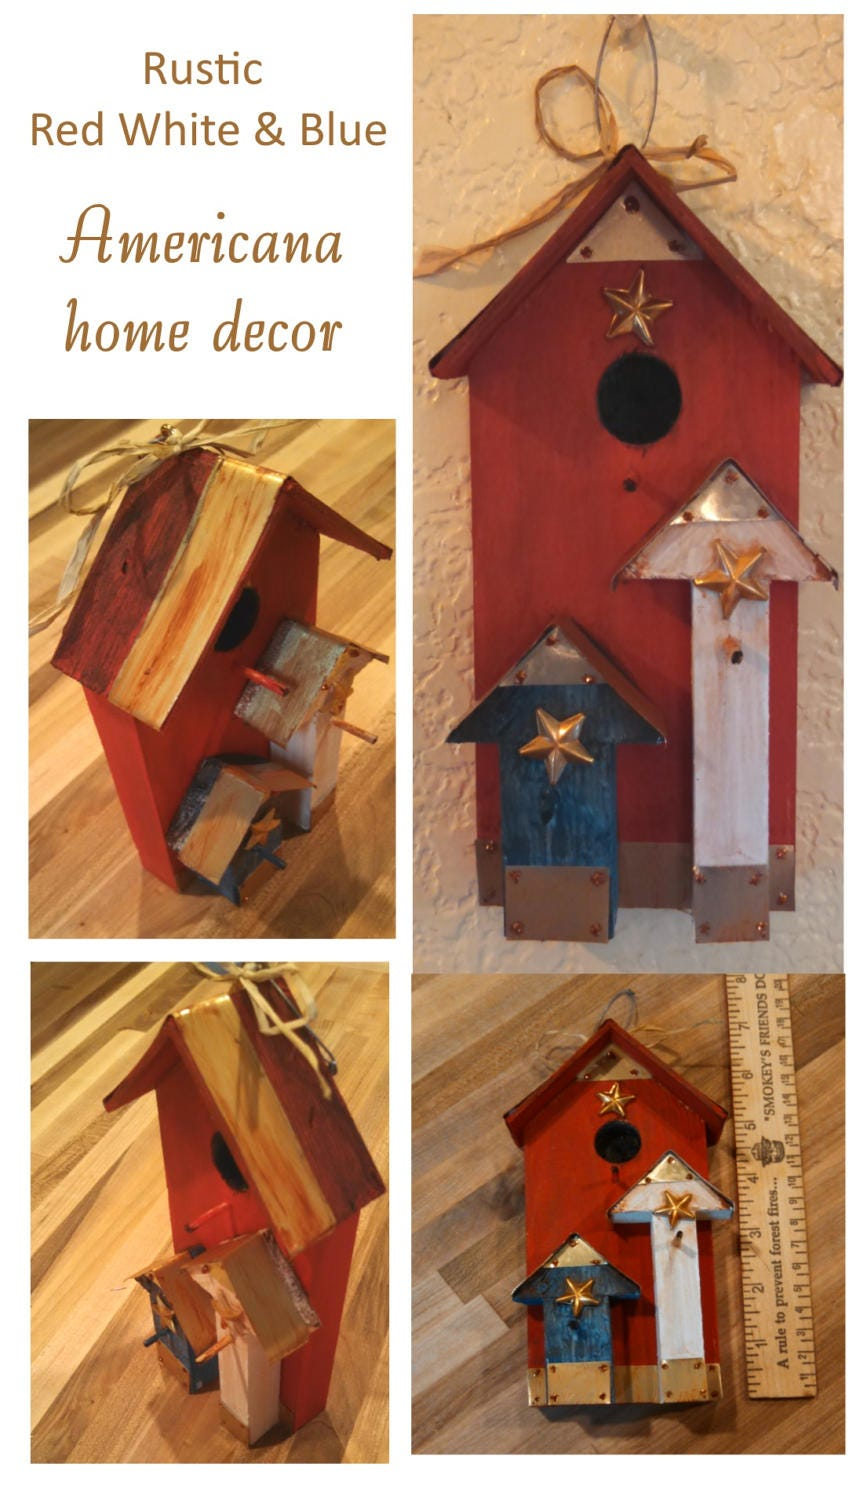 Americana Home Decor silent rooster country home gift shop americana home decor br home Red White Blue Rustic Americana Table Top Home Decor Hanging Birdhouse 4th Of July Decor Tin Wood Brass Stars Patriotic Party Decor